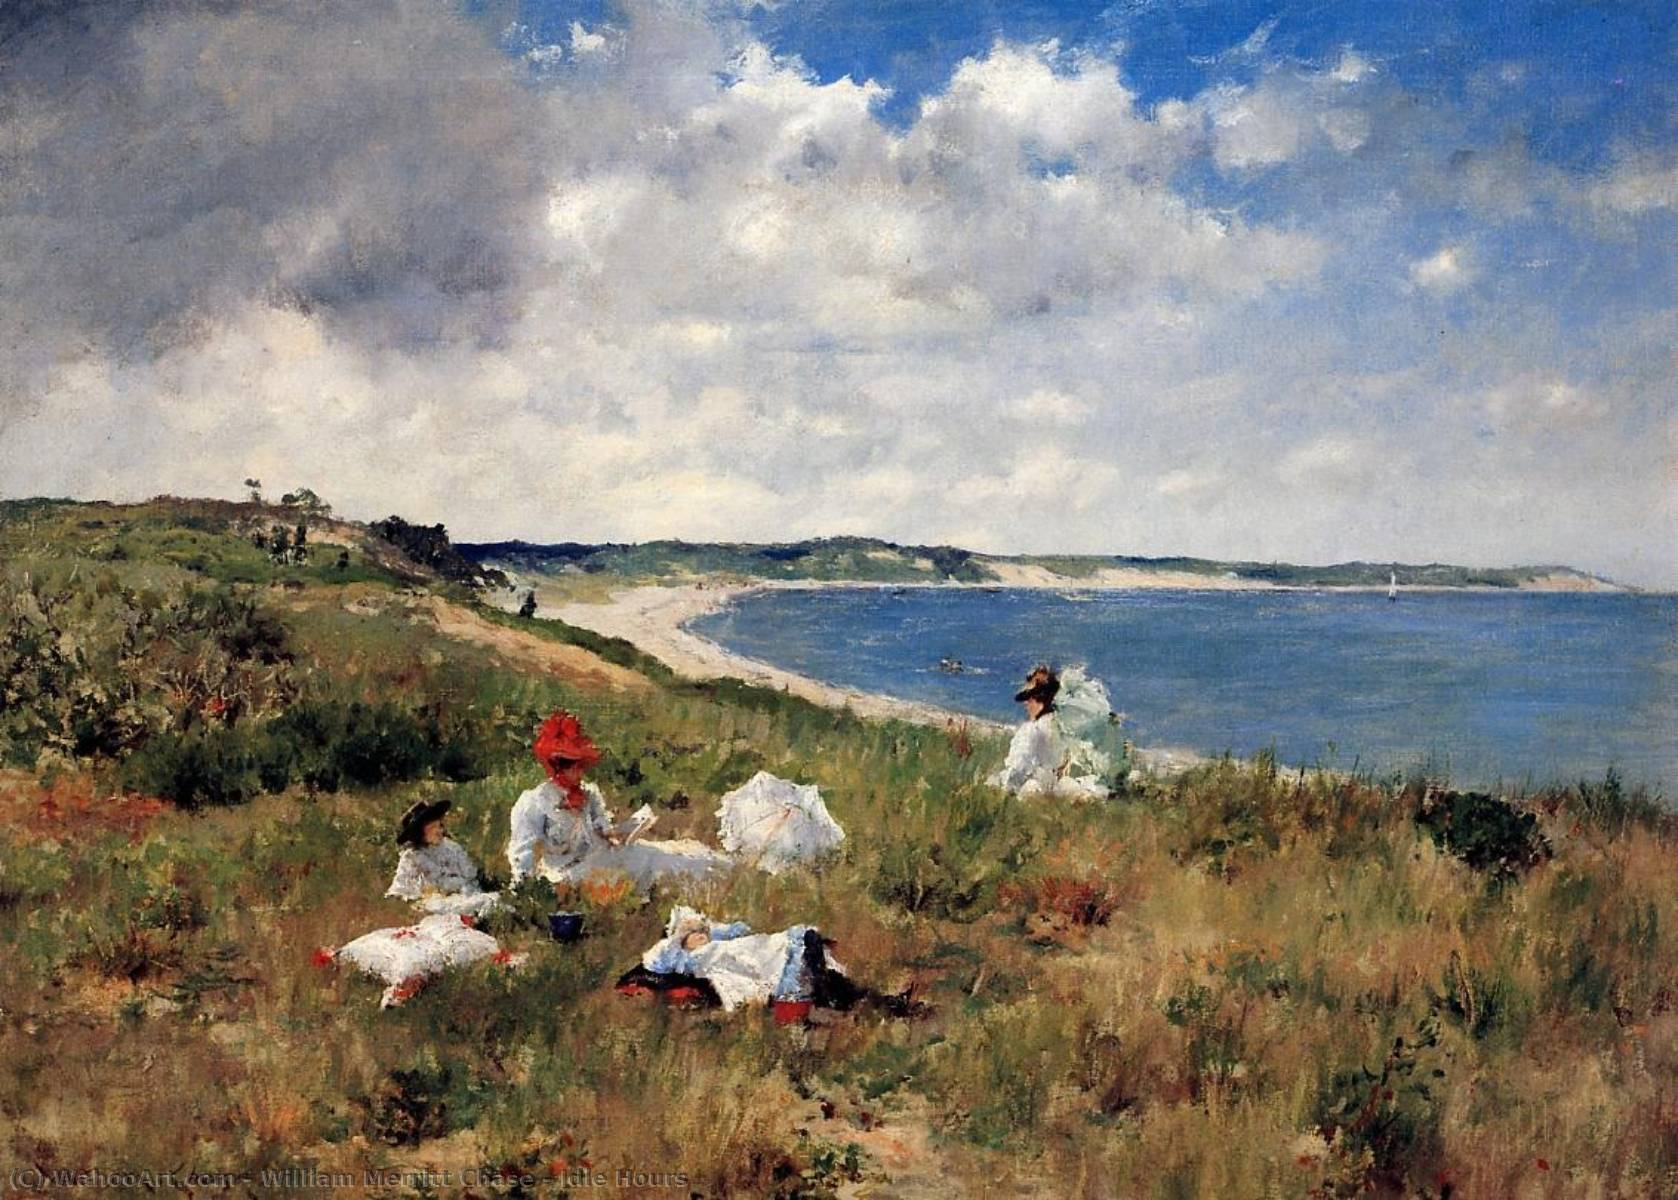 Comprar Reproducciones De Arte Del Museo | Horas ociosas de William Merritt Chase | Most-Famous-Paintings.com